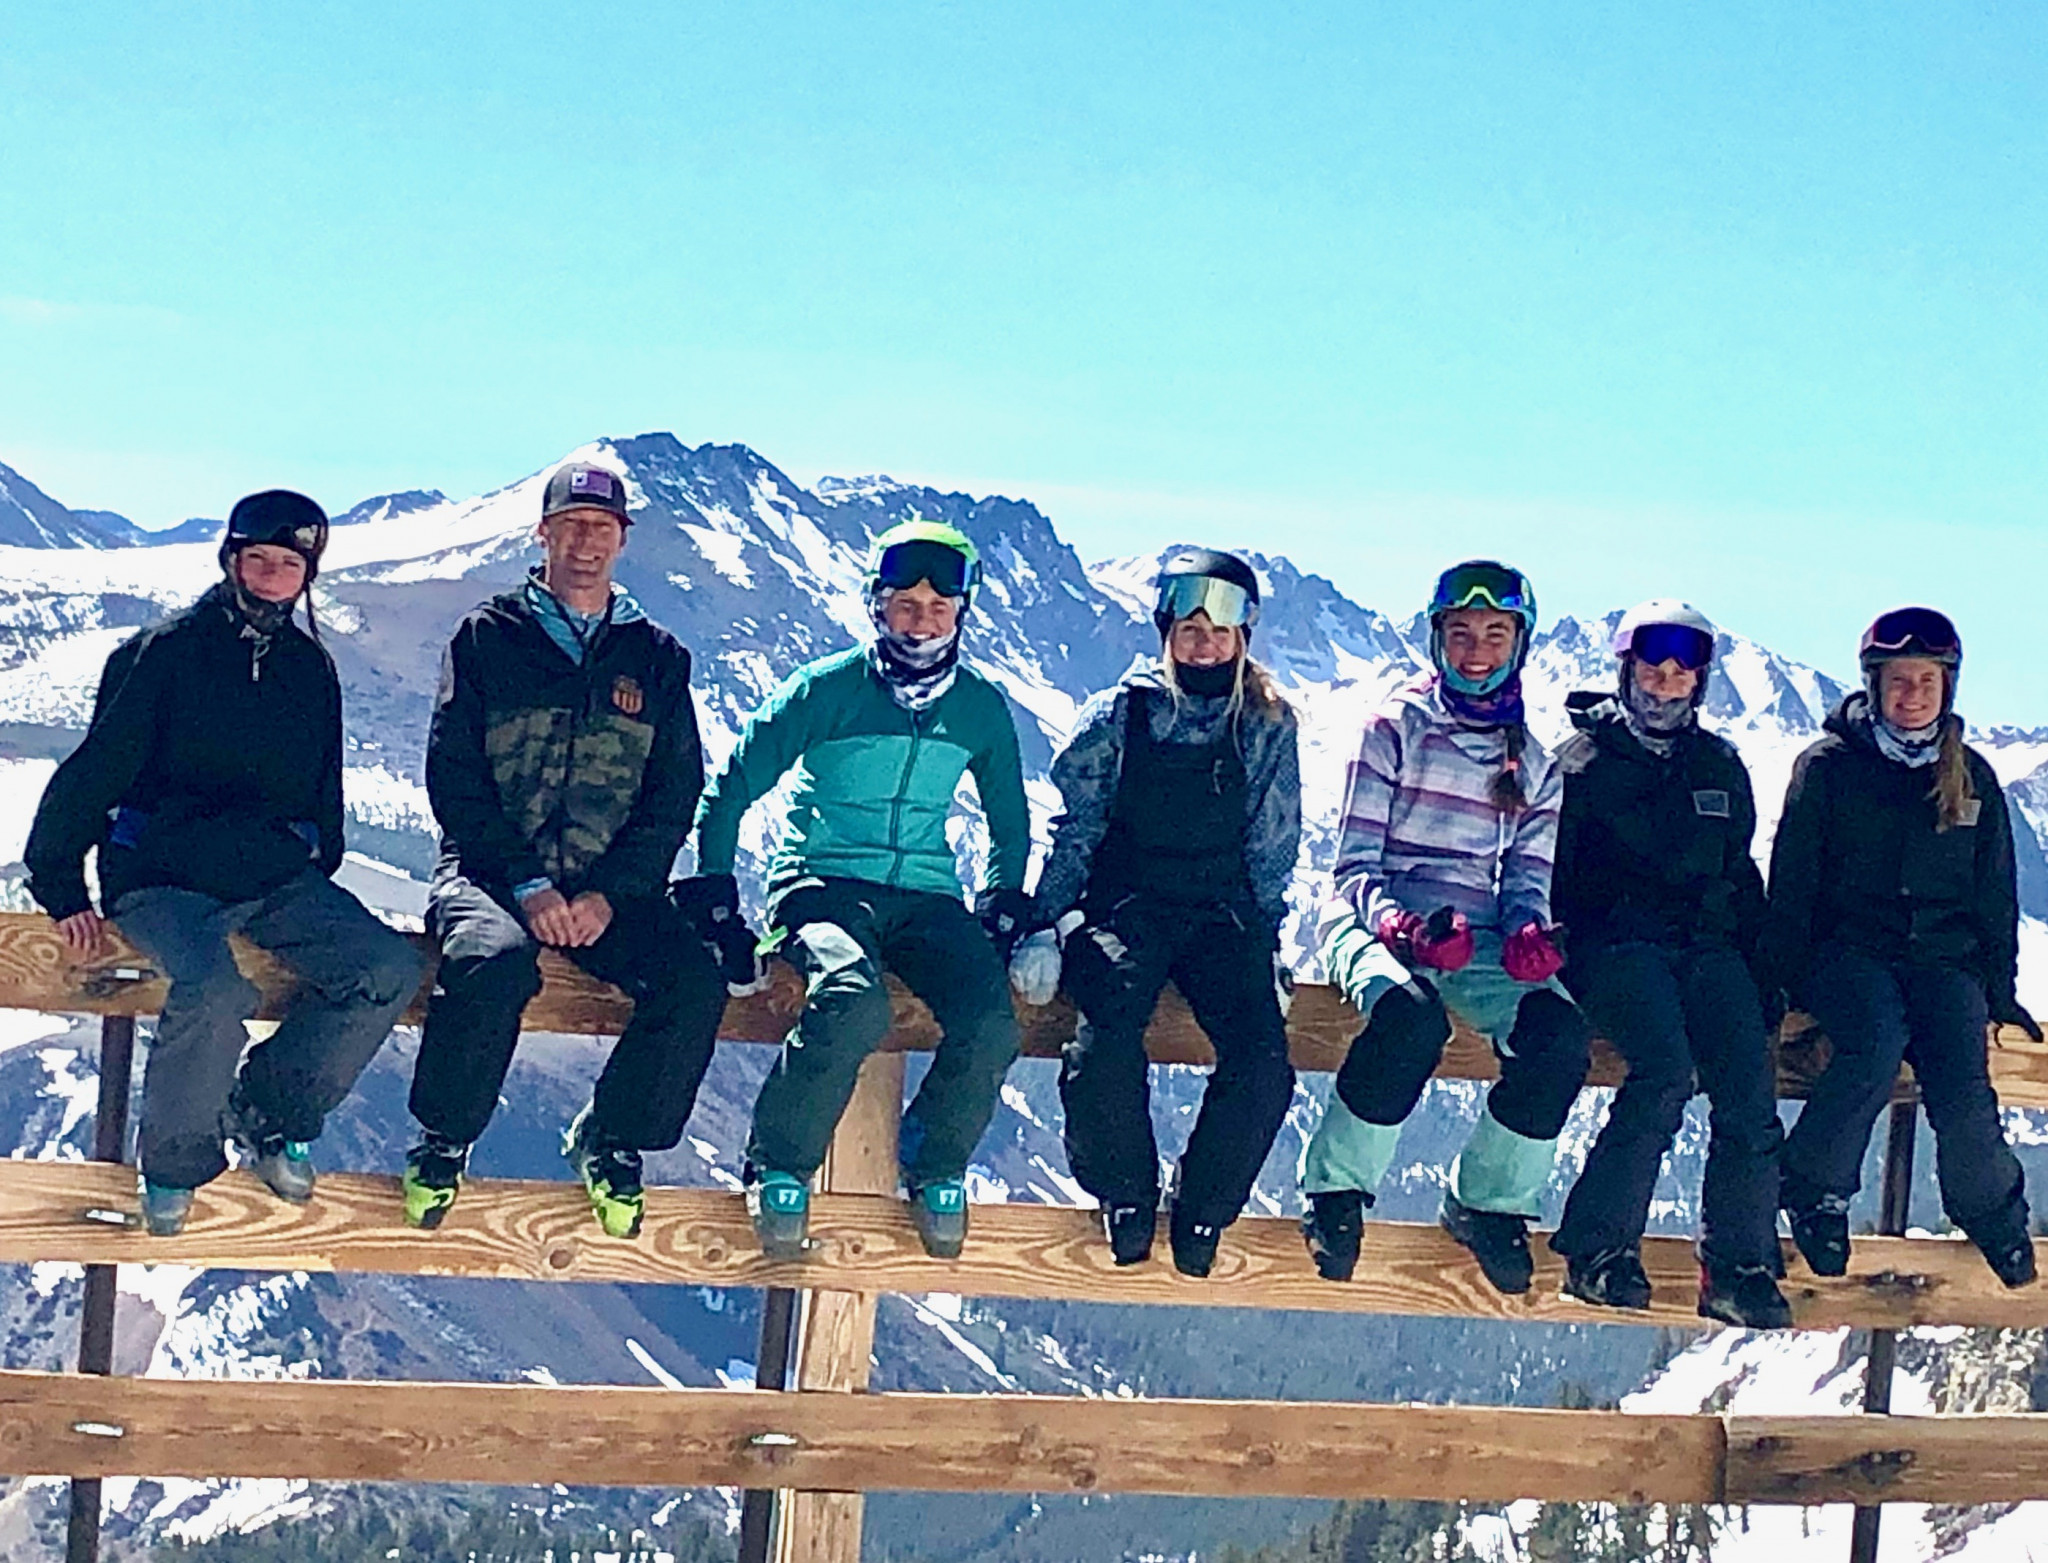 Young American freeskiers and snowboarders experience Project Gold with Olympic coaches and facilities